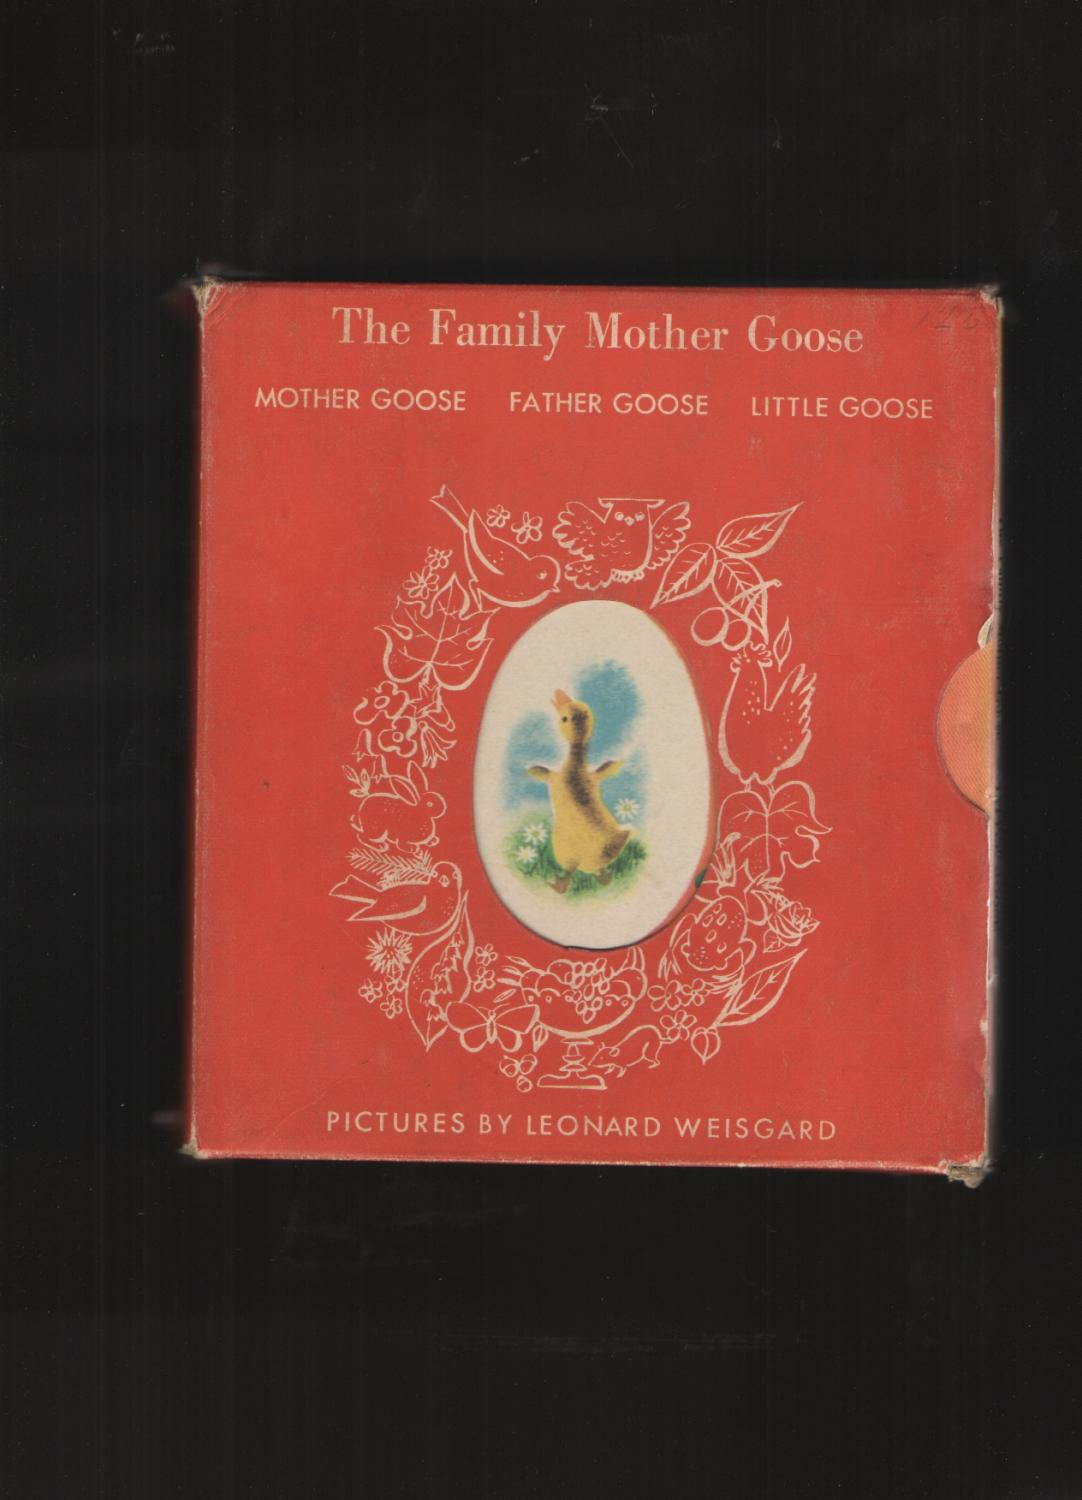 The Family Mother Goose in Slipcase Little Goose, Father Goose and Mother Goose Weisgard, Leonard